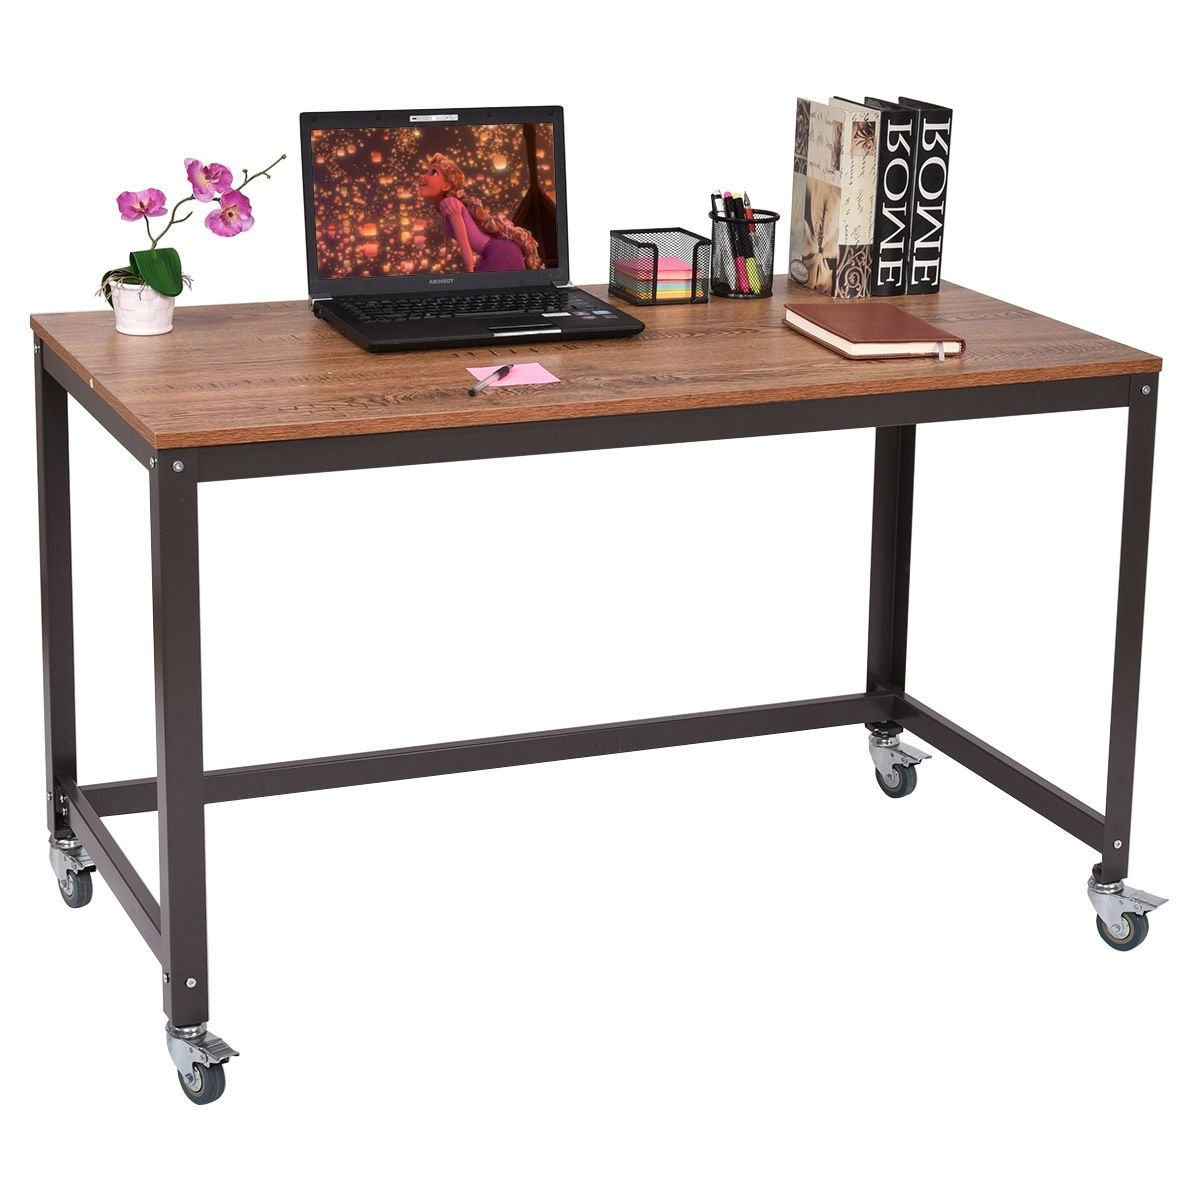 Industrial Modern Steel Frame Wood Top Computer Desk with Locking Wheels